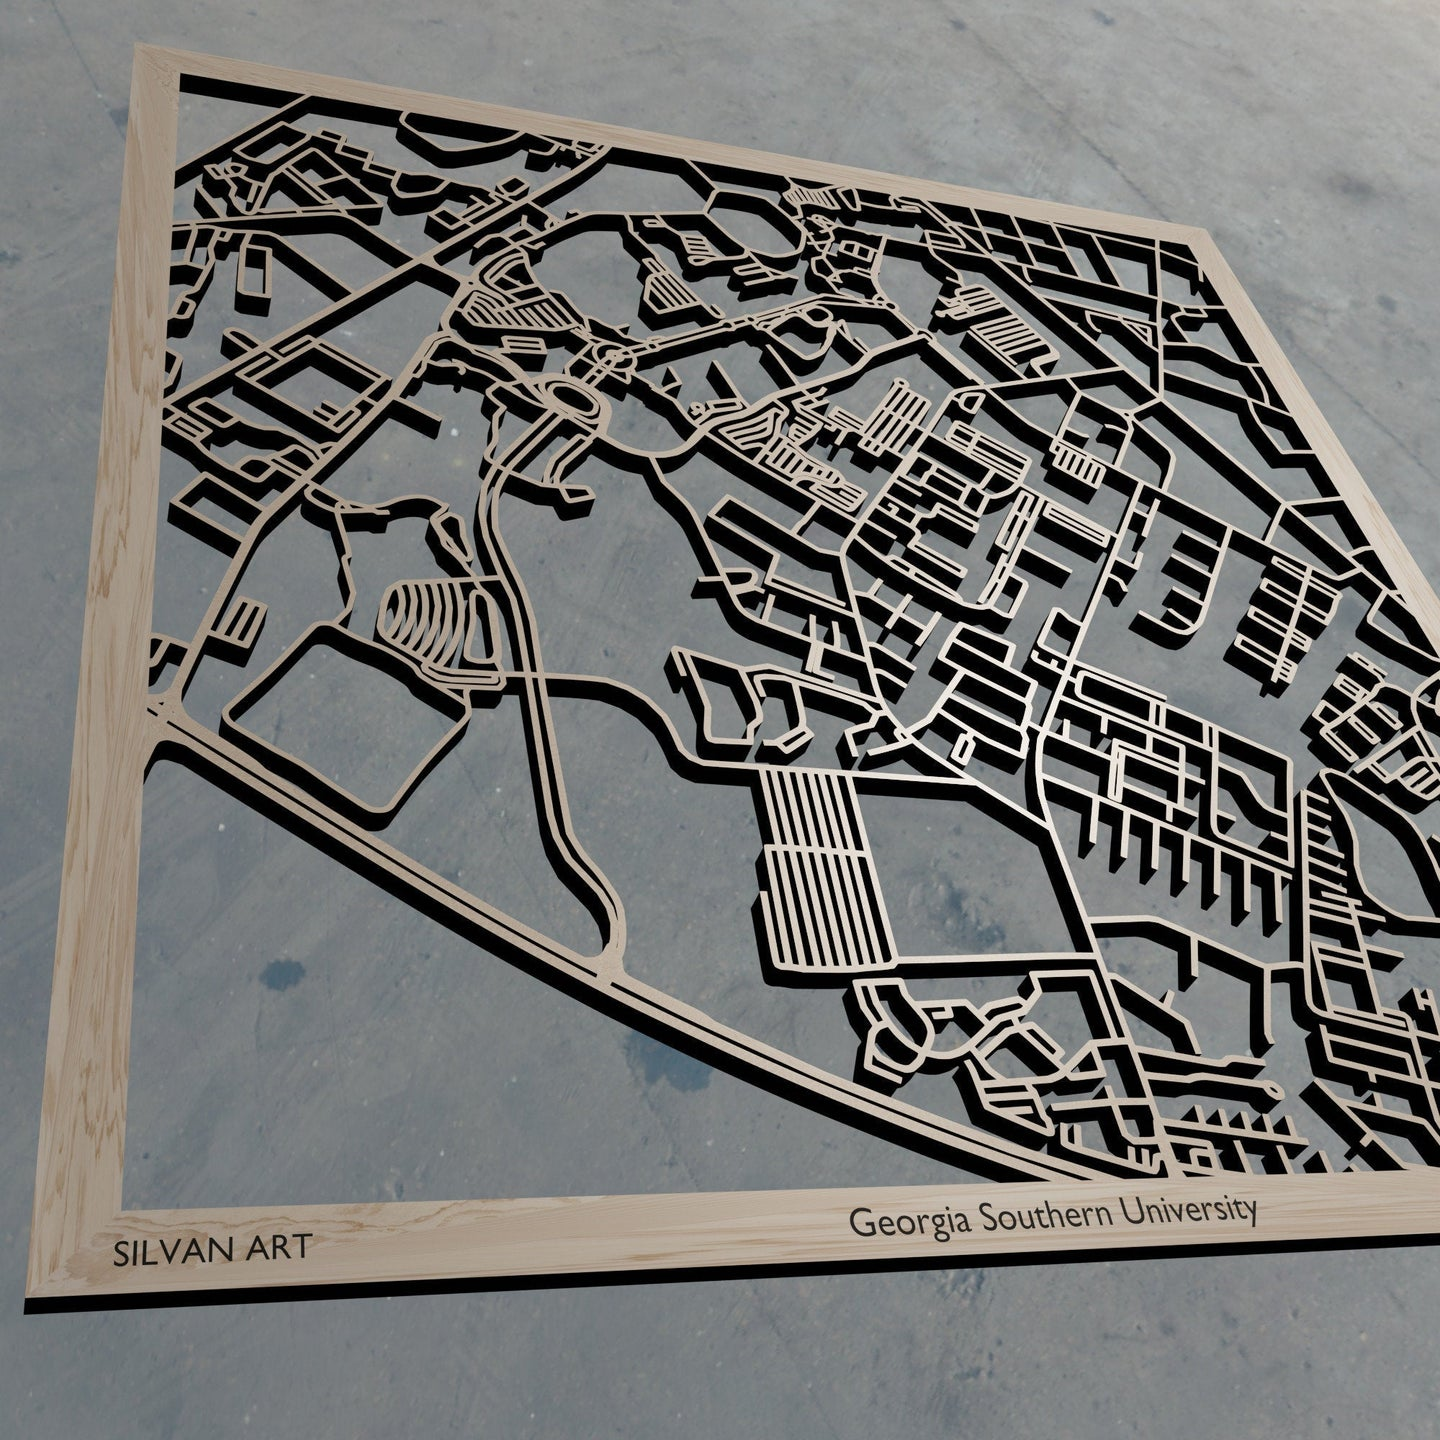 Georgia Southern University in Statesboro GA 3D Wooden Laser Cut Campus Map | Unique Gift | Silvan Art